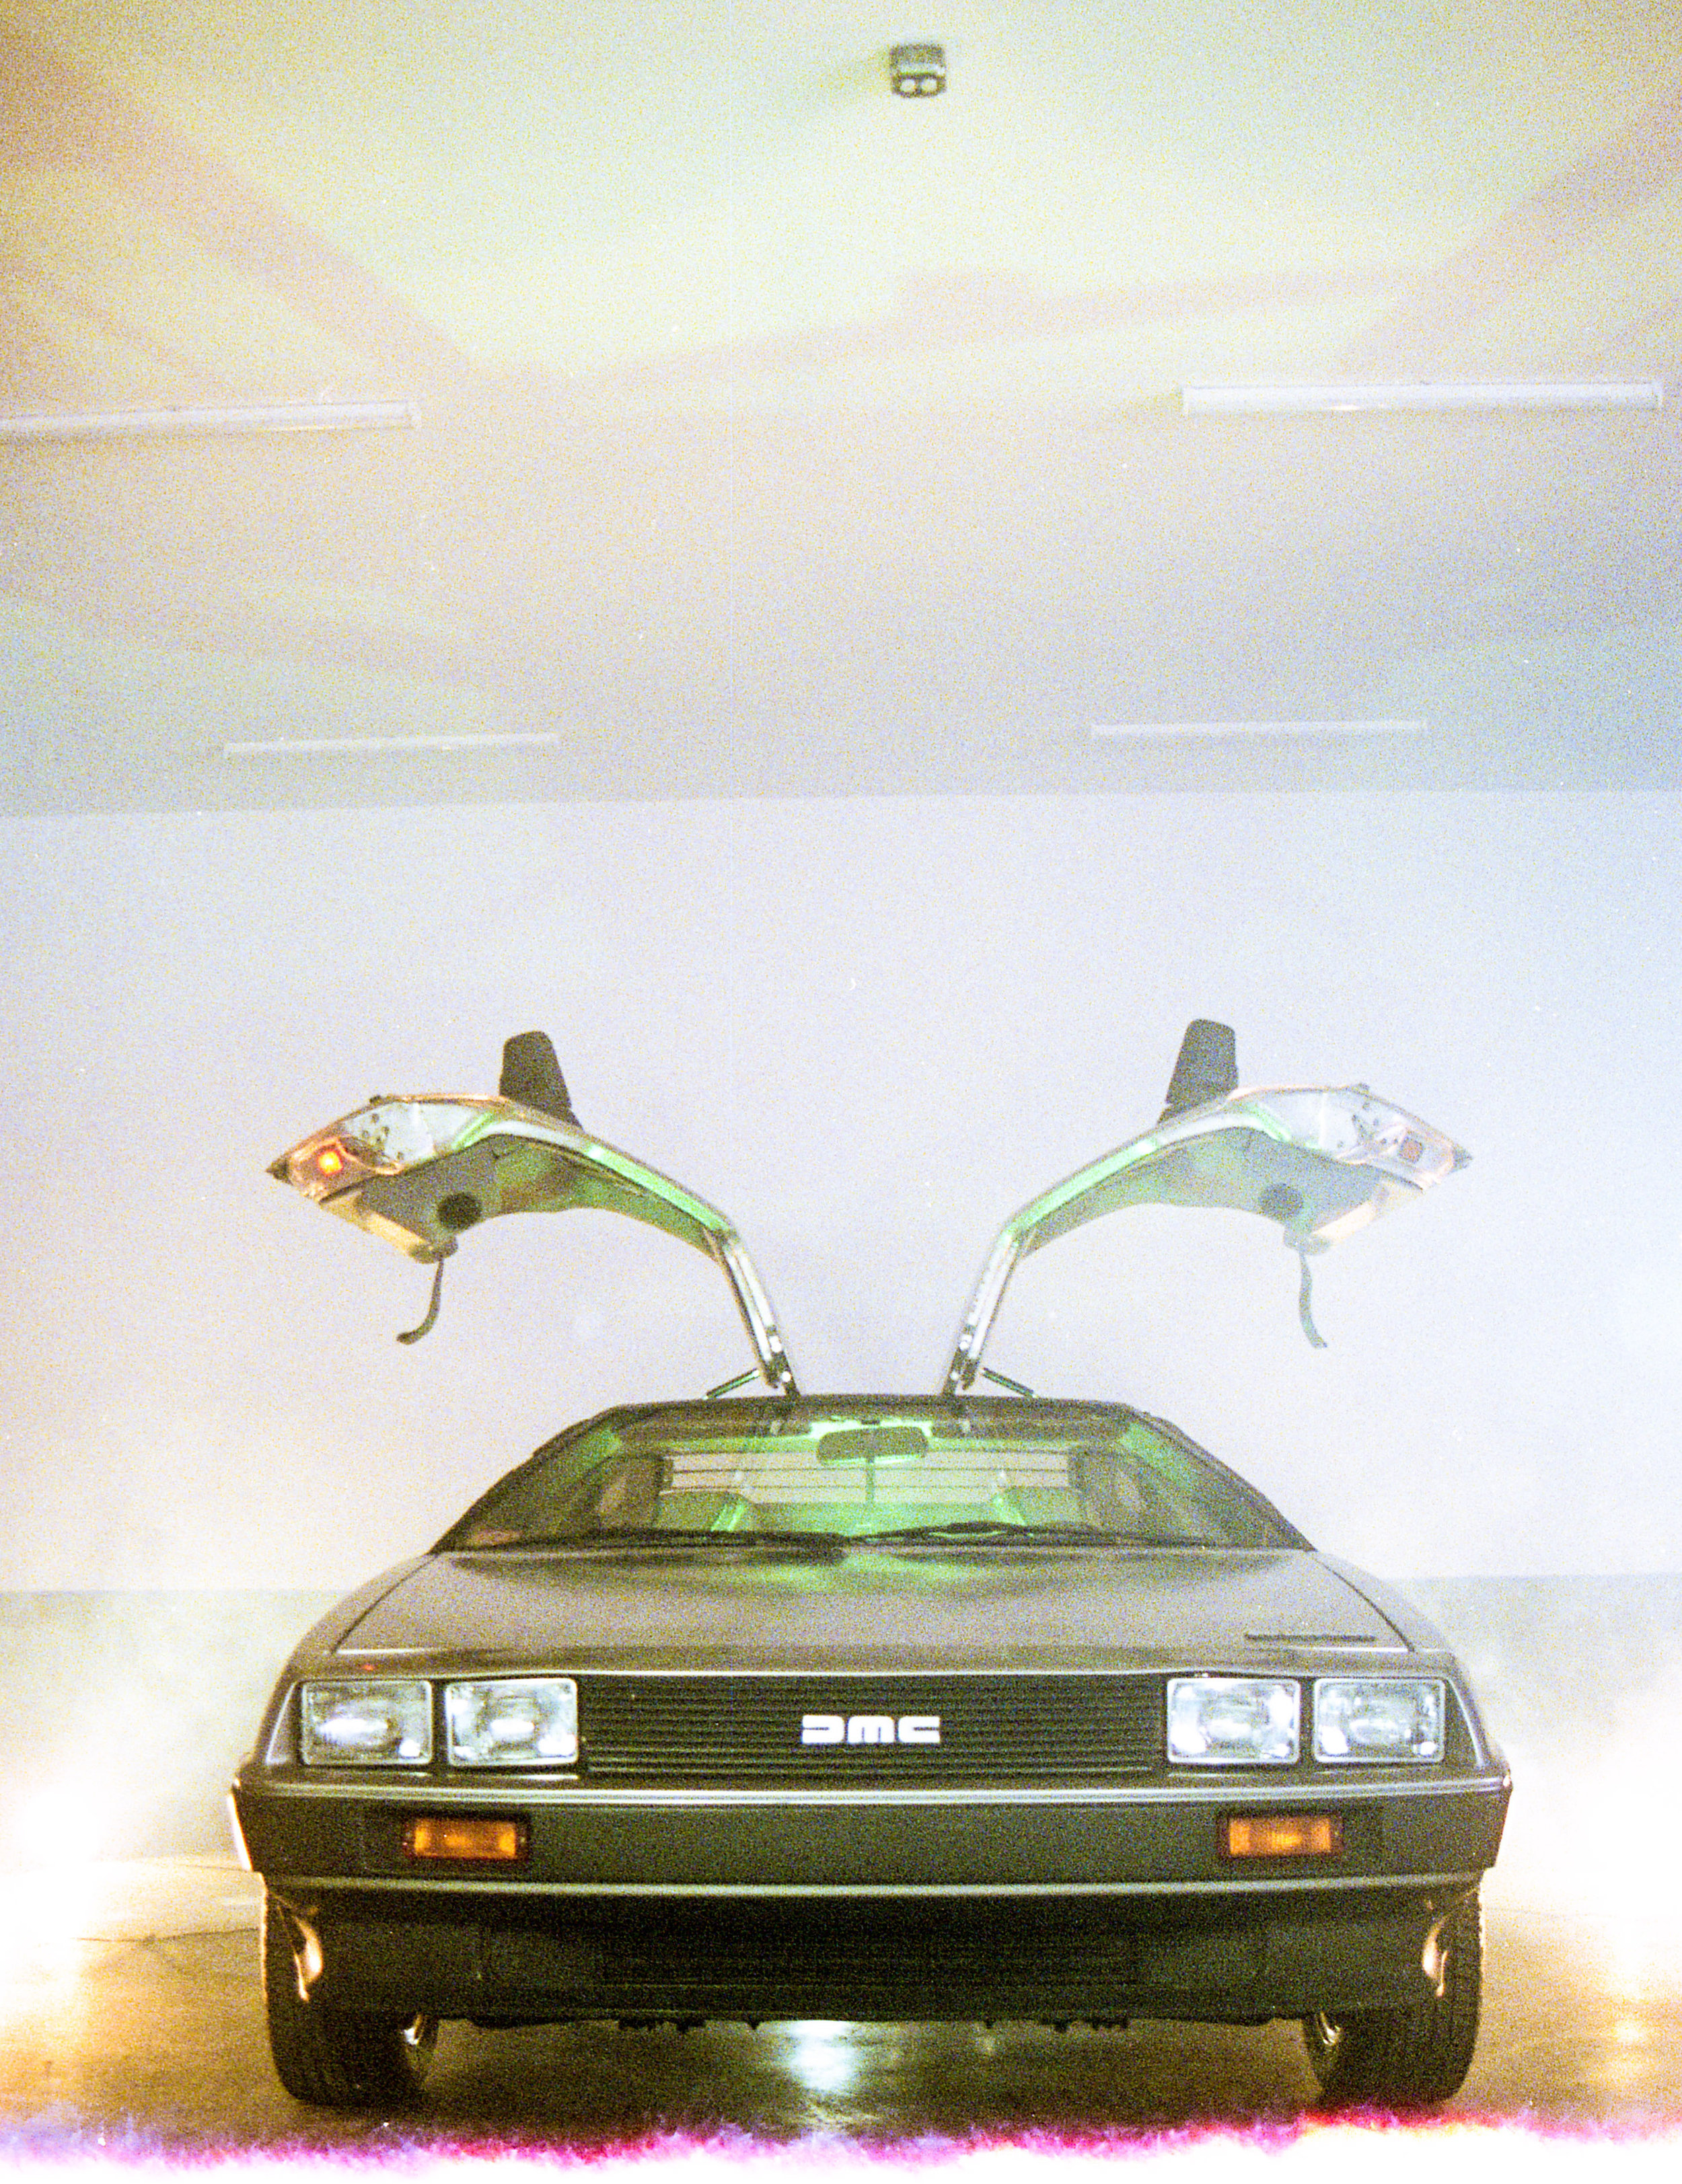 delorean-fog-film-52.jpg